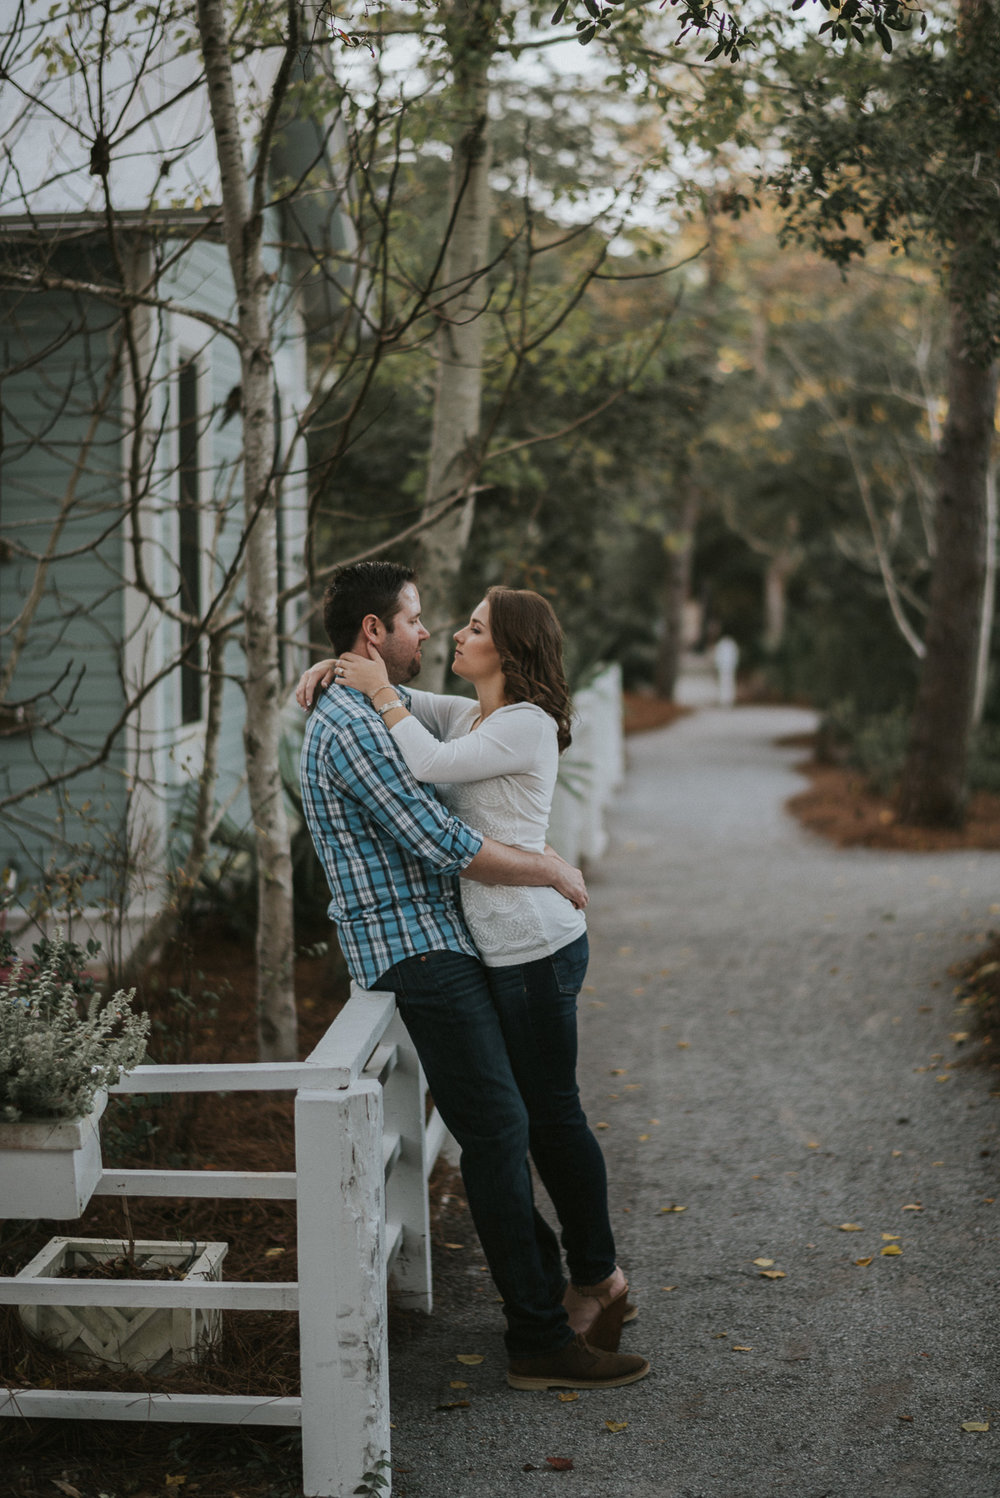 Destiniation Engagement photography at Seaside, Fl